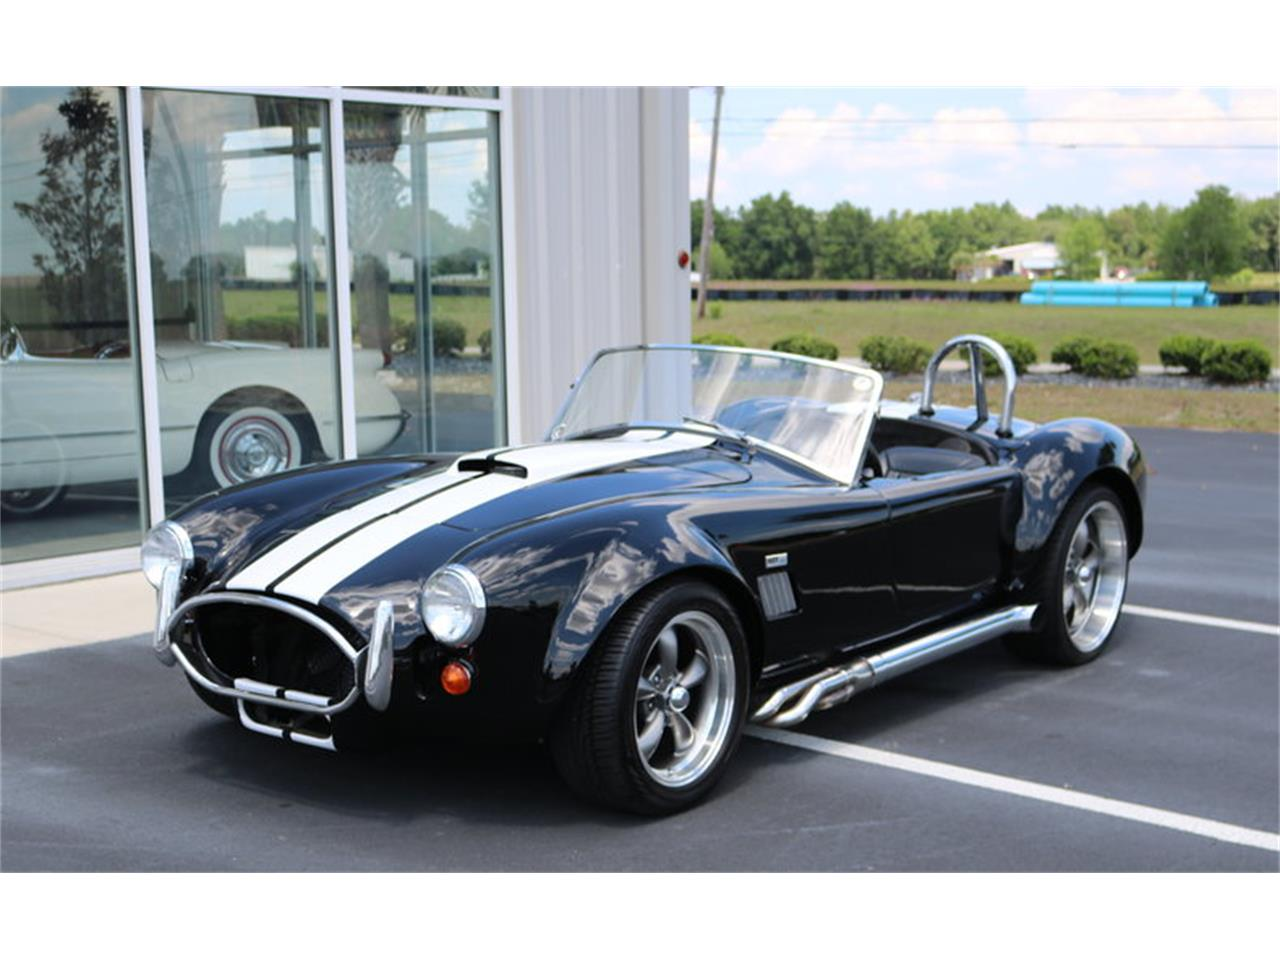 Large picture of 67 cobra na1r